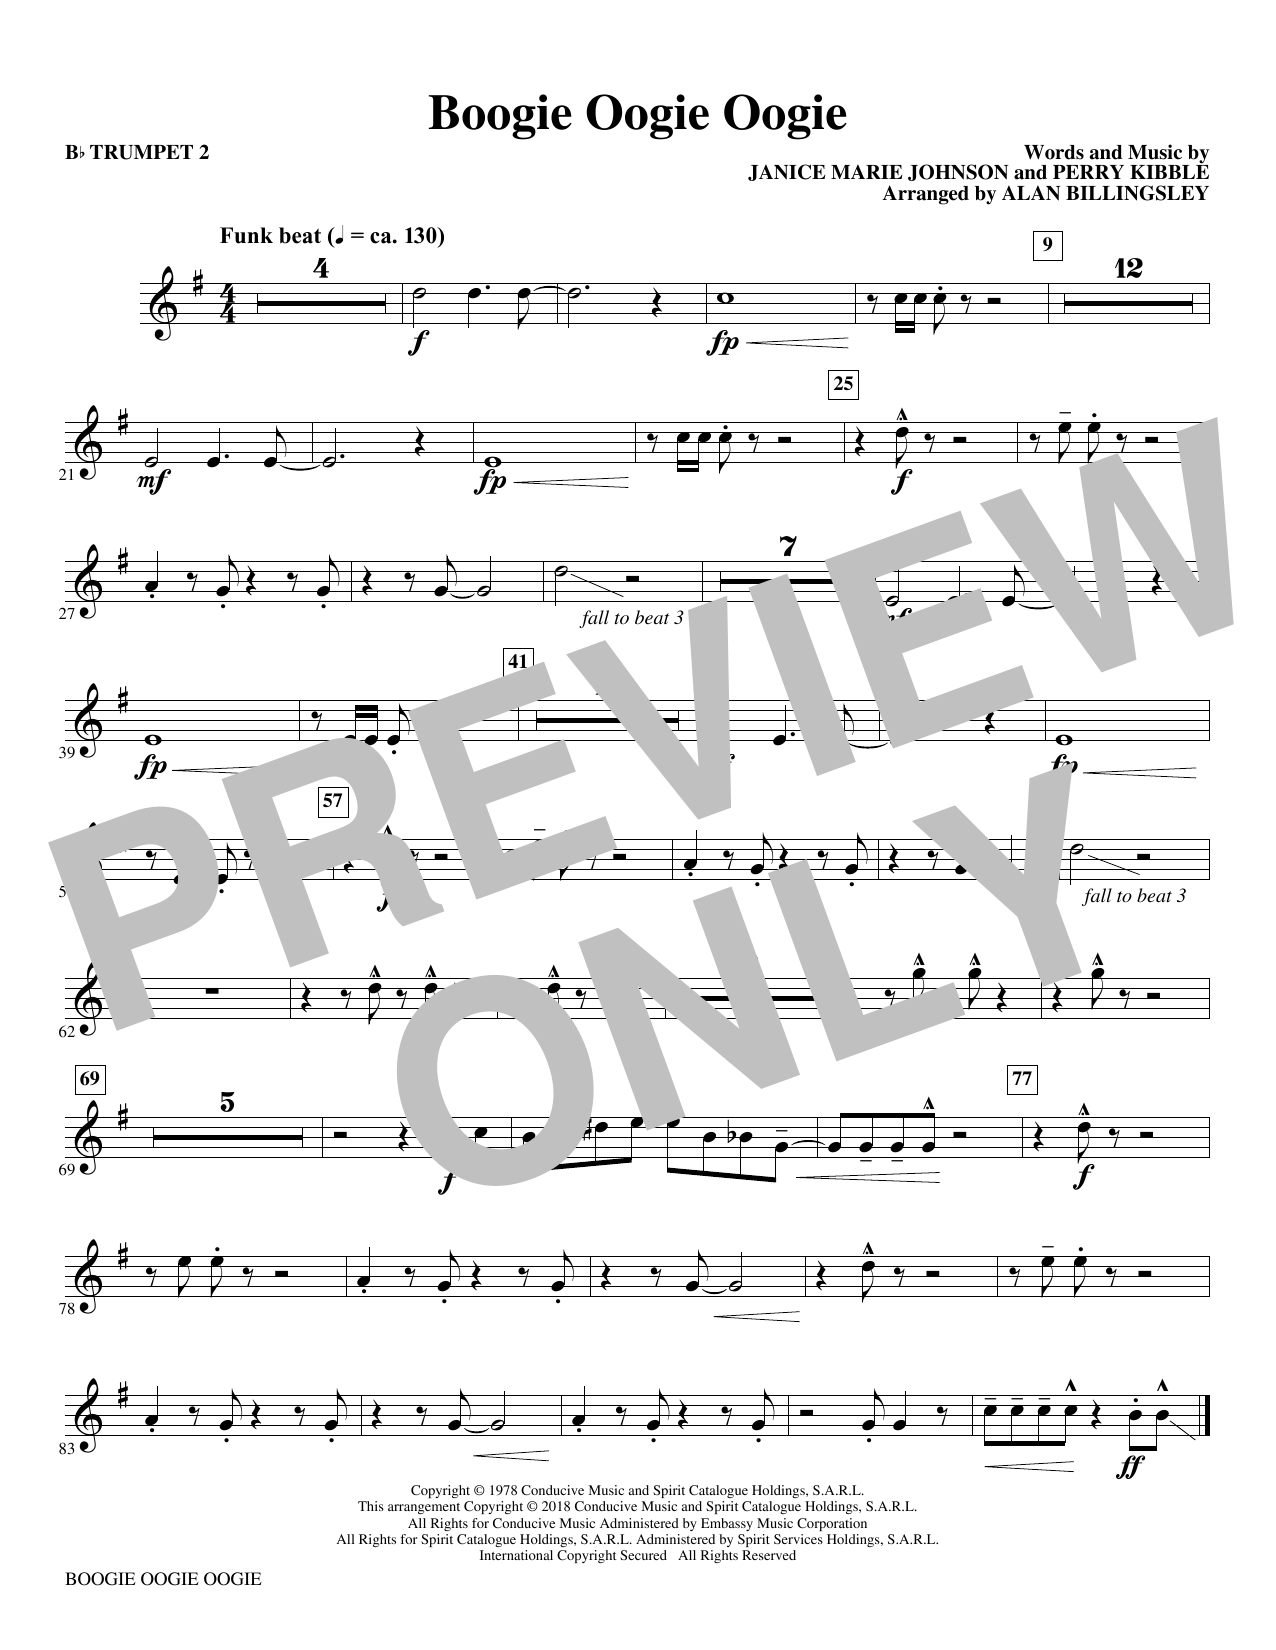 Download A Taste Of Honey 'Boogie Oogie Oogie (arr. Alan Billingsley) - Bb Trumpet 2' Digital Sheet Music Notes & Chords and start playing in minutes